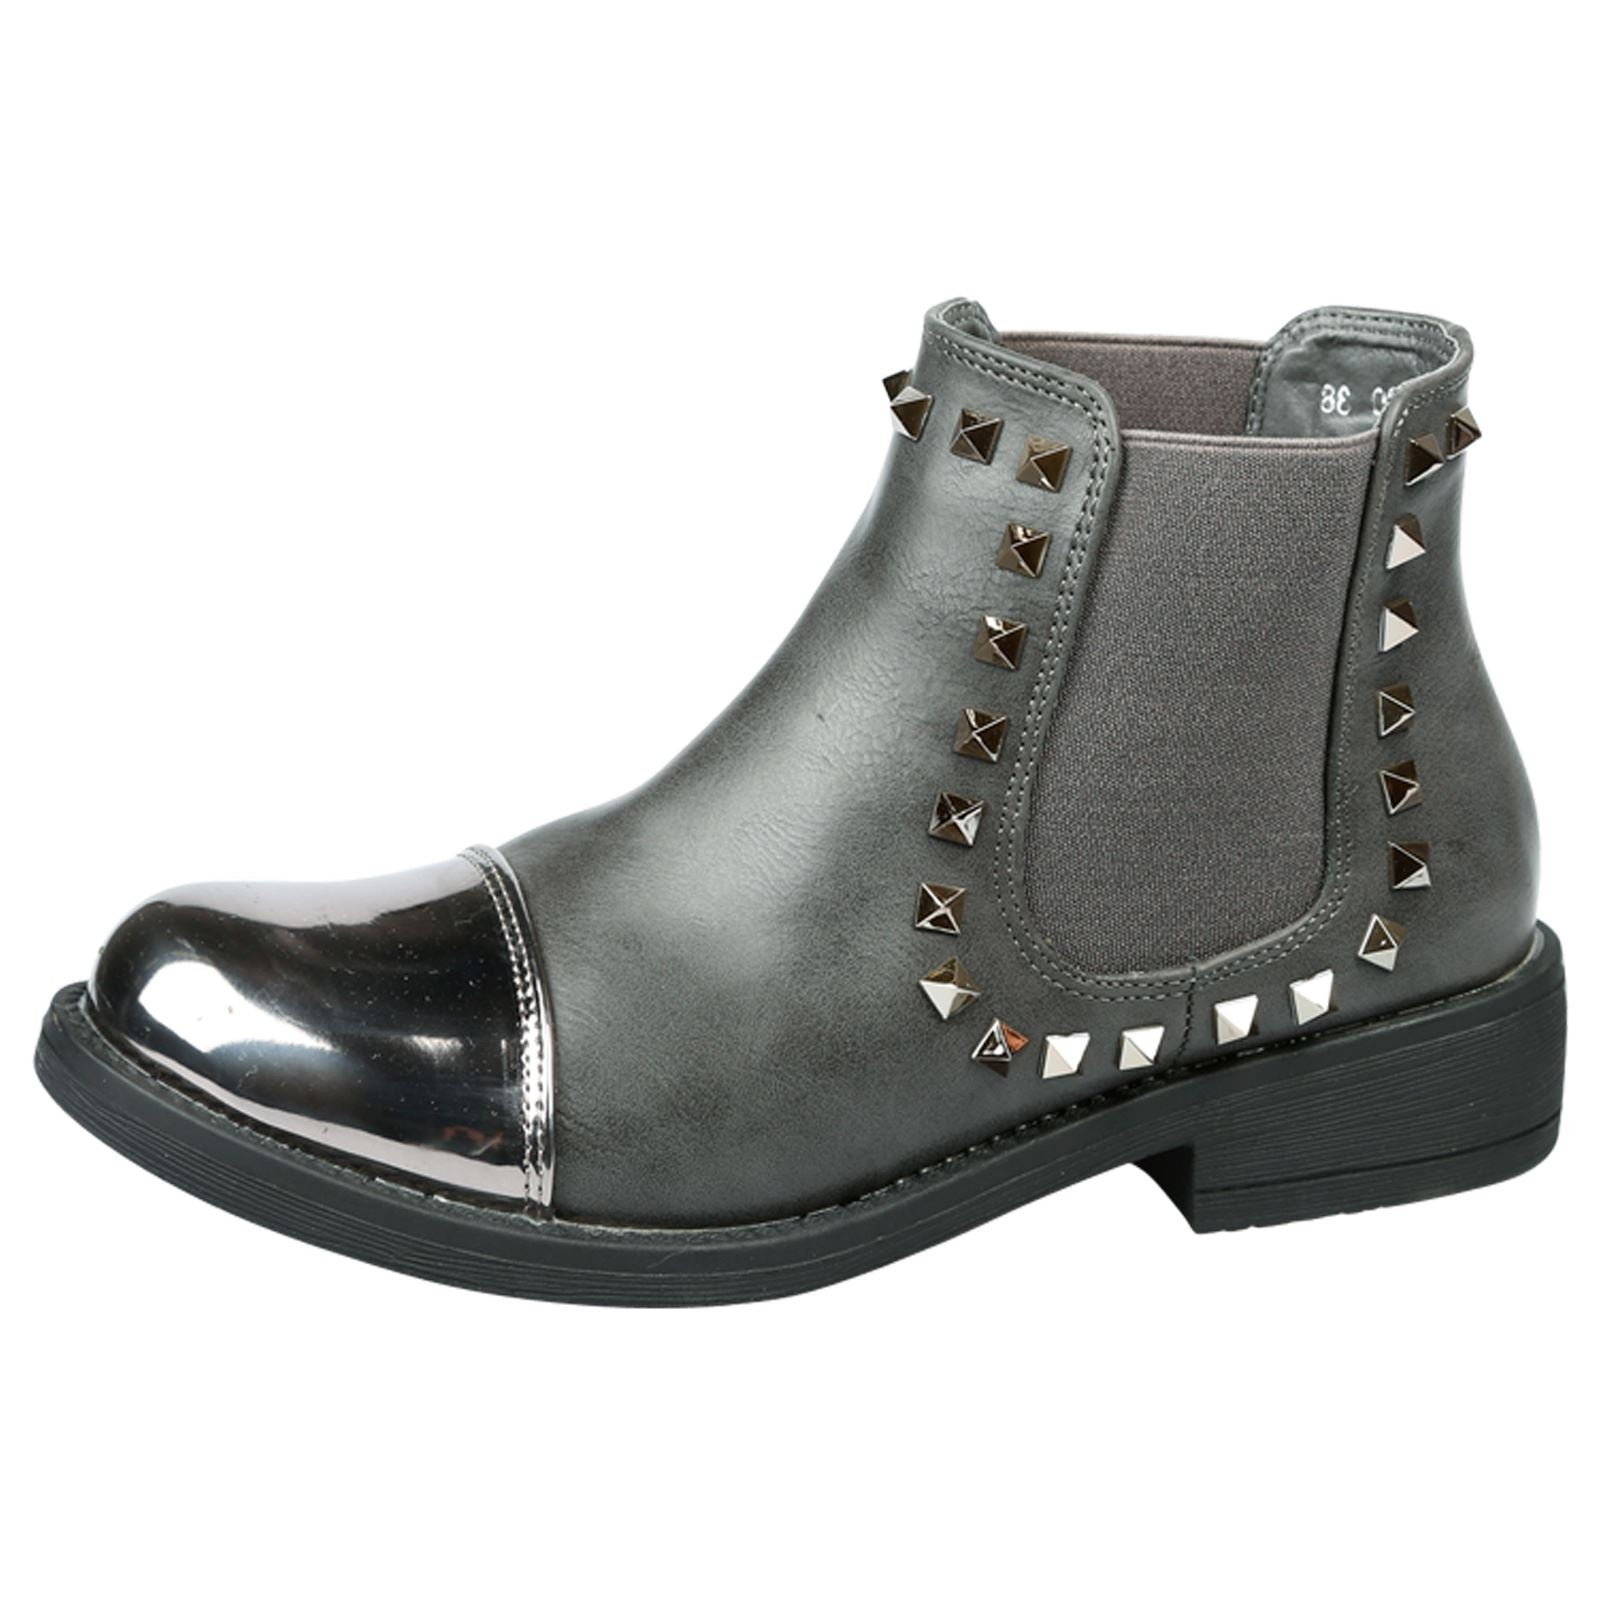 Ciara Studded Chelsea Boots in Grey Faux Leather